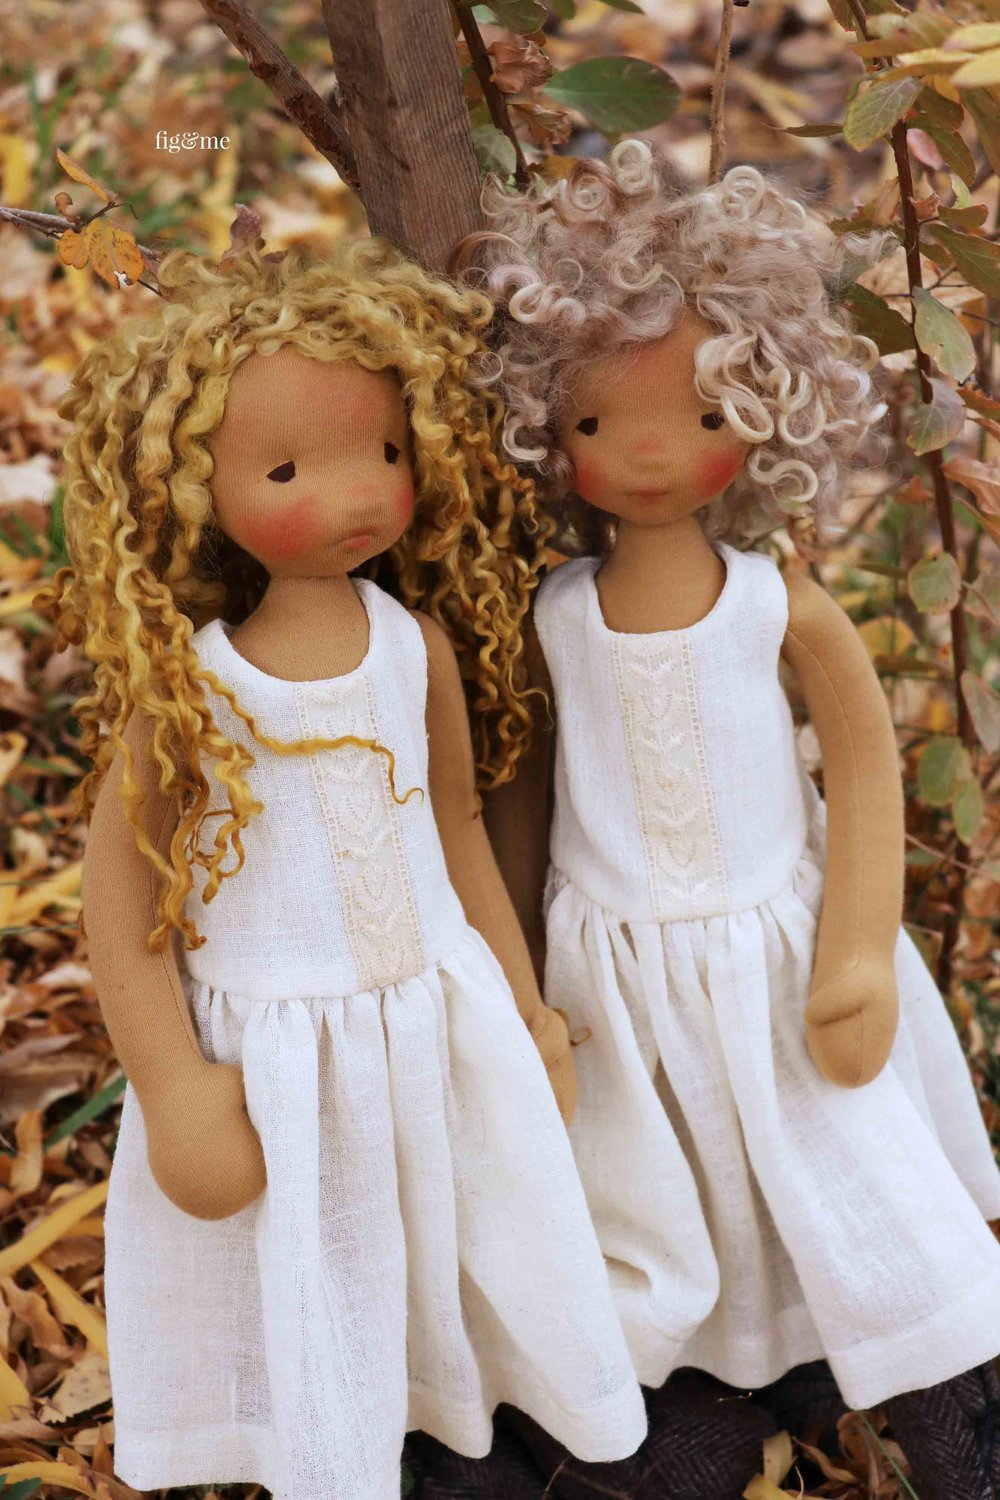 Mori, the blonde, and Winter, with the short hair. Two natural fiber art dolls by fig and me.